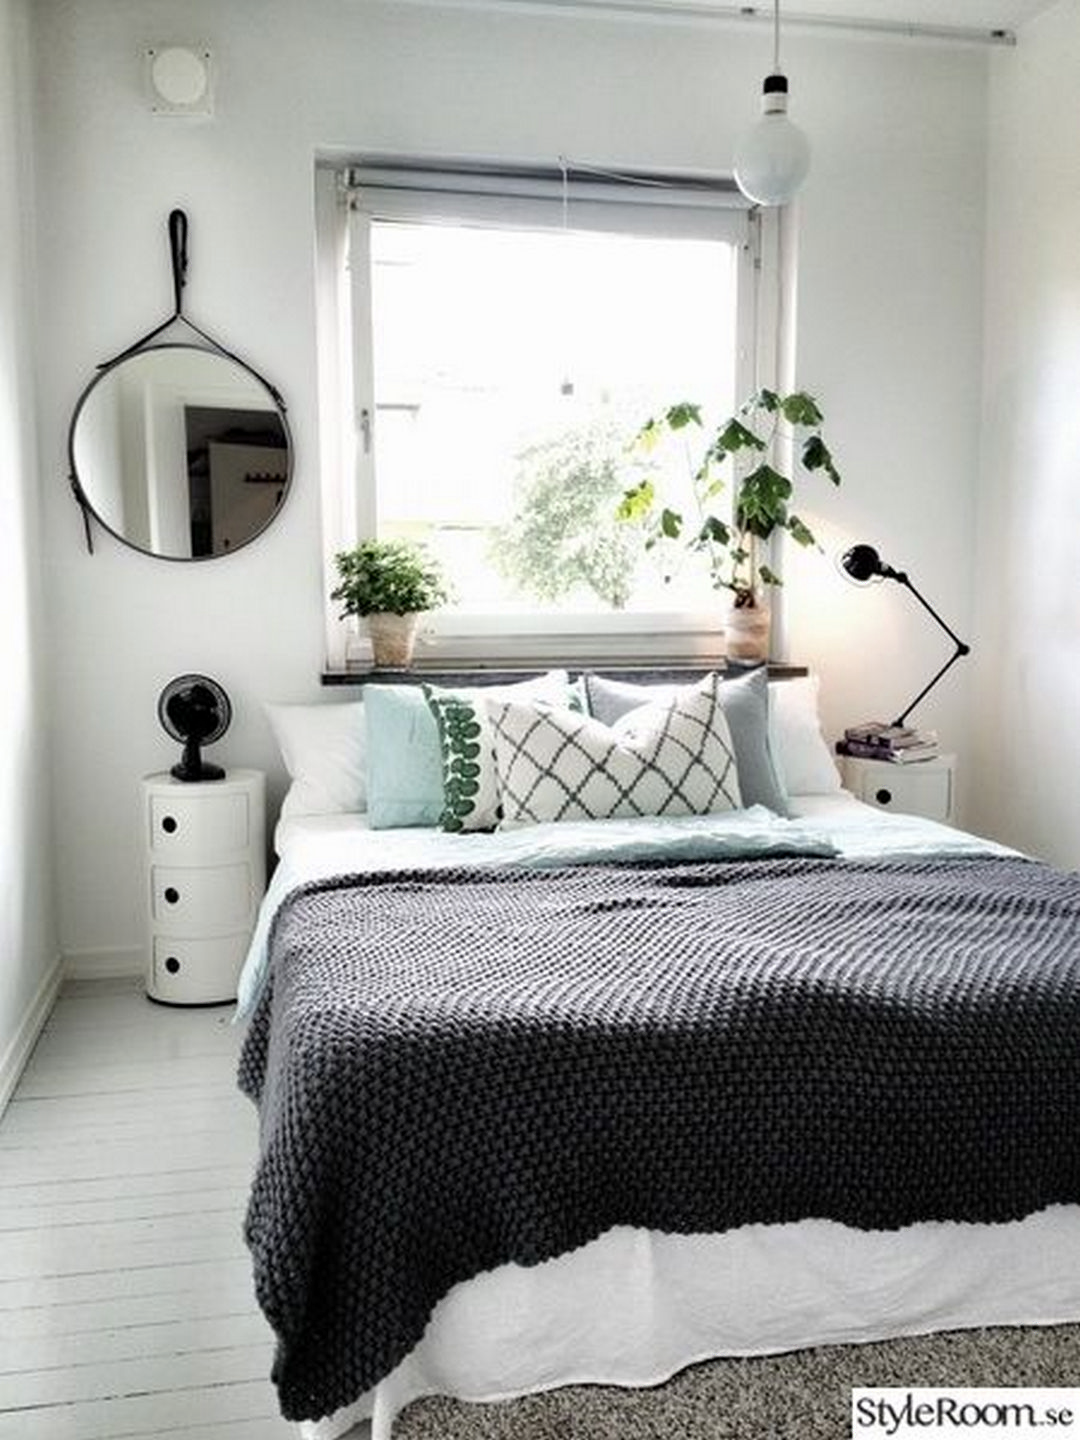 80 Cozy Small Bedroom Interior Design Ideas Https Www Futuristarchitecture Com 15277 Cozy Small Bedr In 2020 Small Bedroom Decor Bedroom Interior Cozy Small Bedrooms